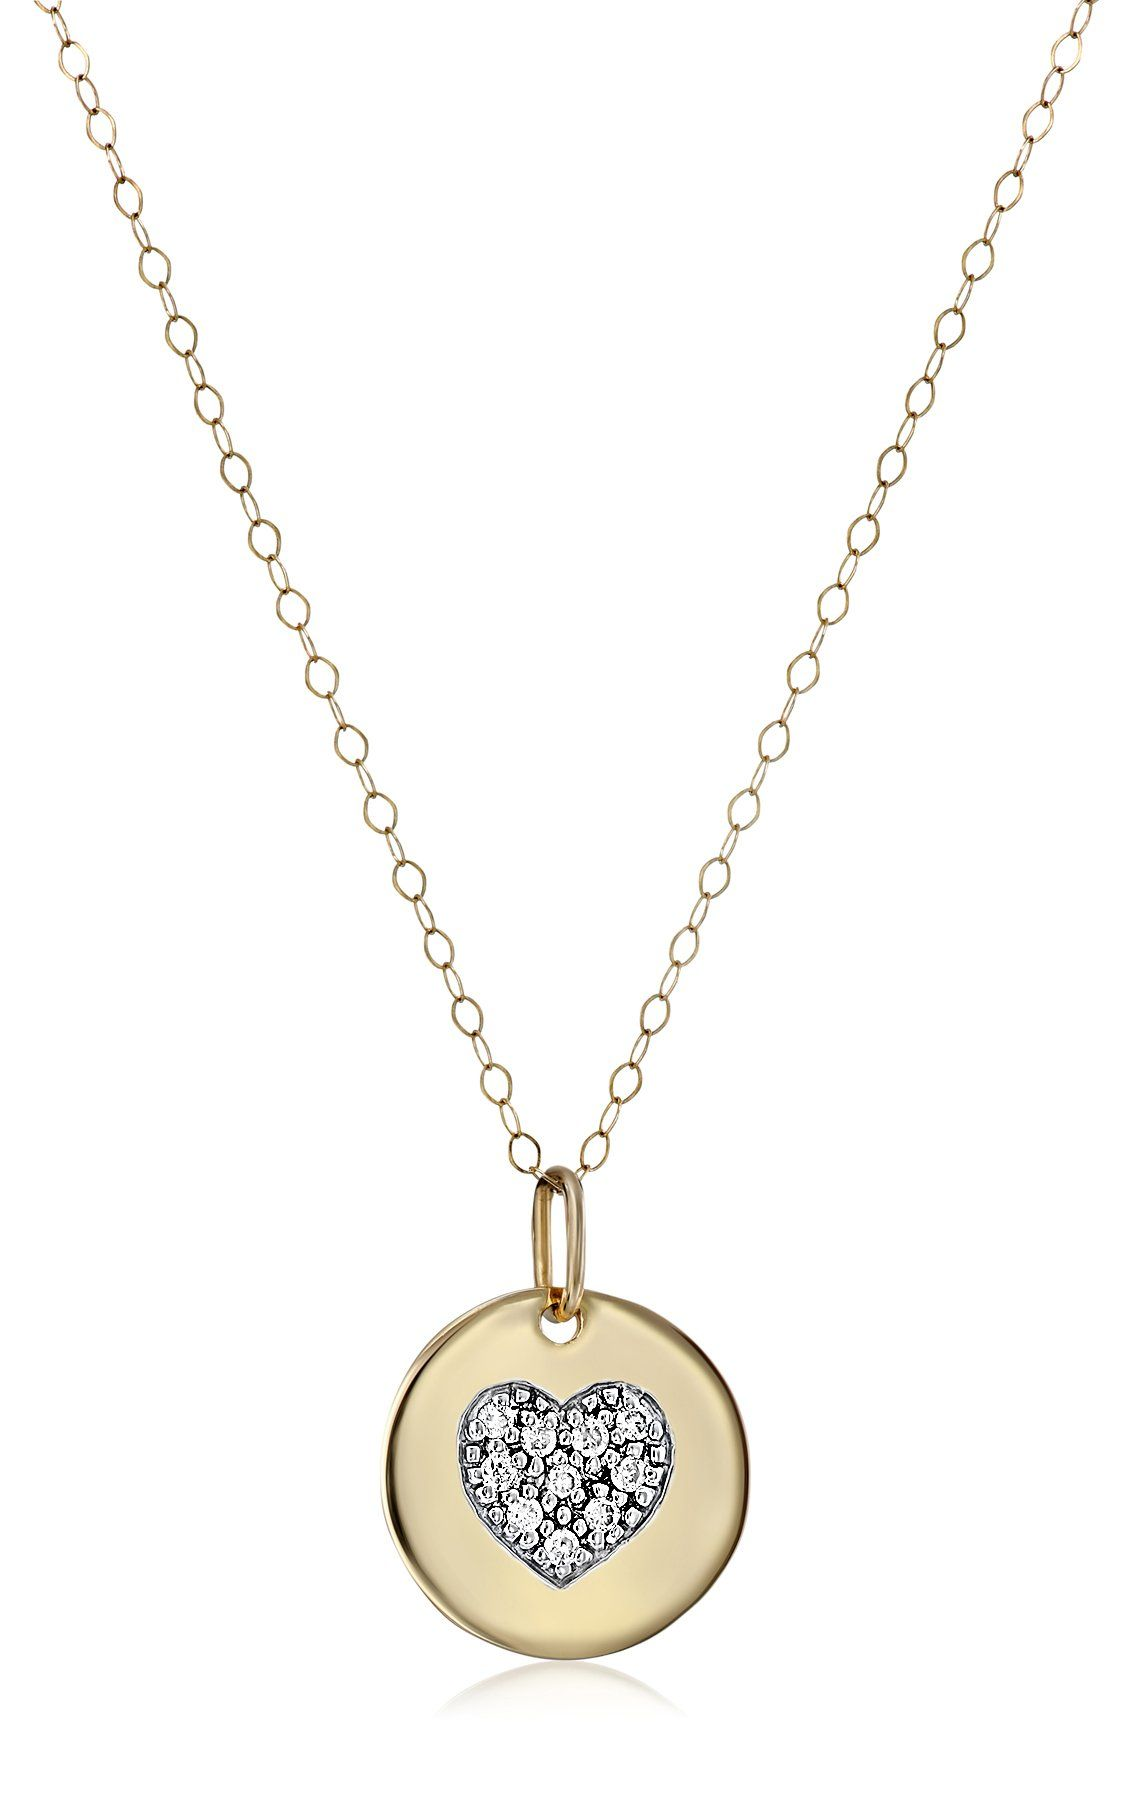 K yellow gold heart with diamond pendant necklace cttw ij